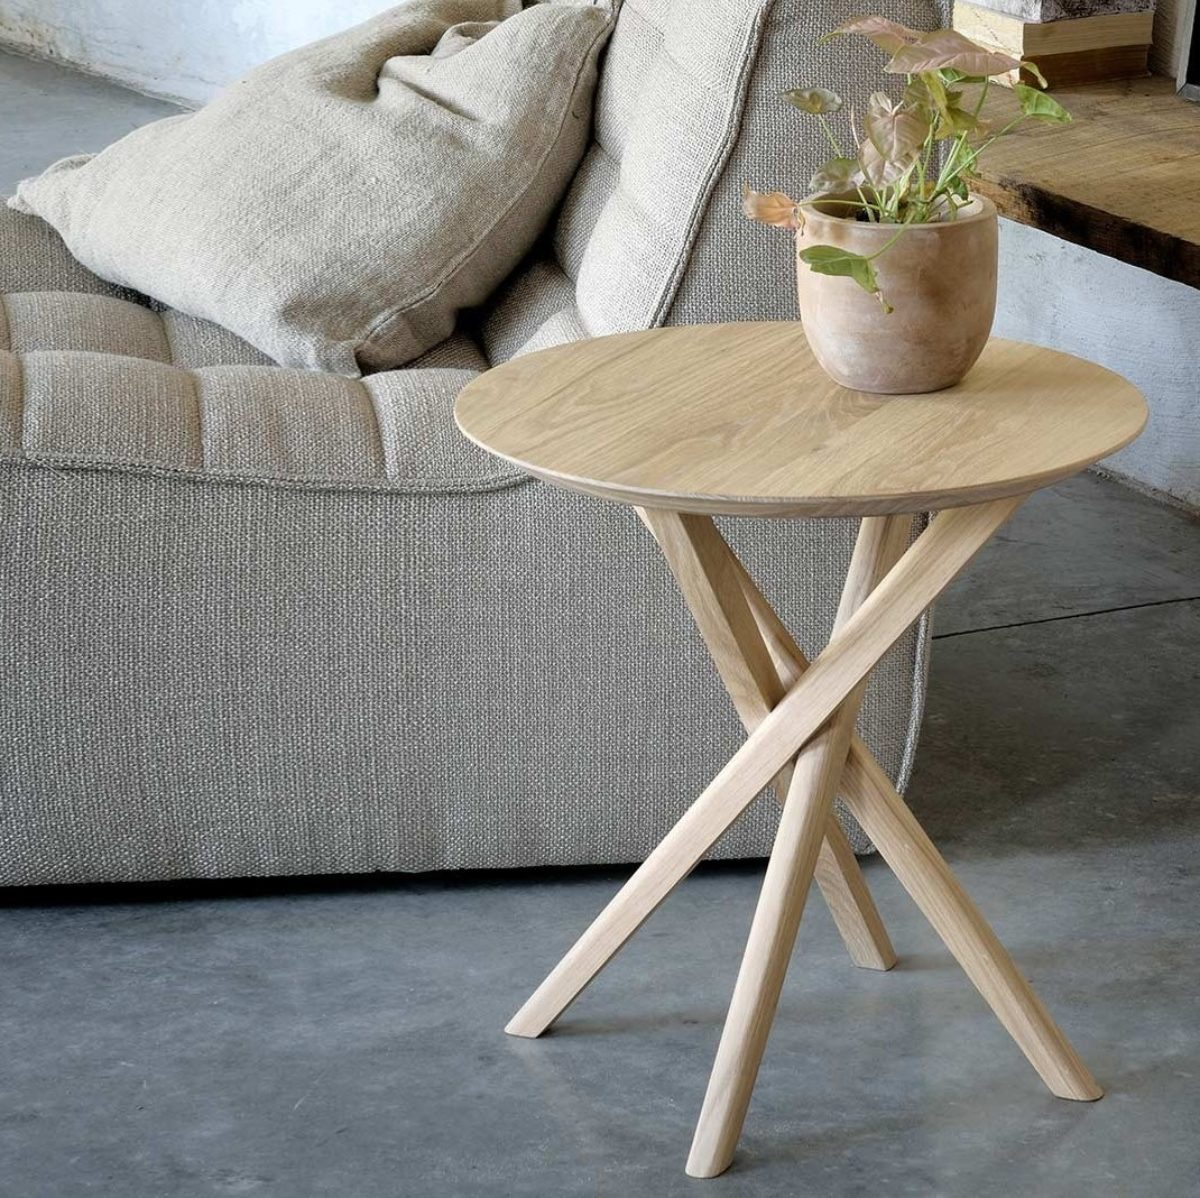 Ethnicraft mikado round side table oak 01